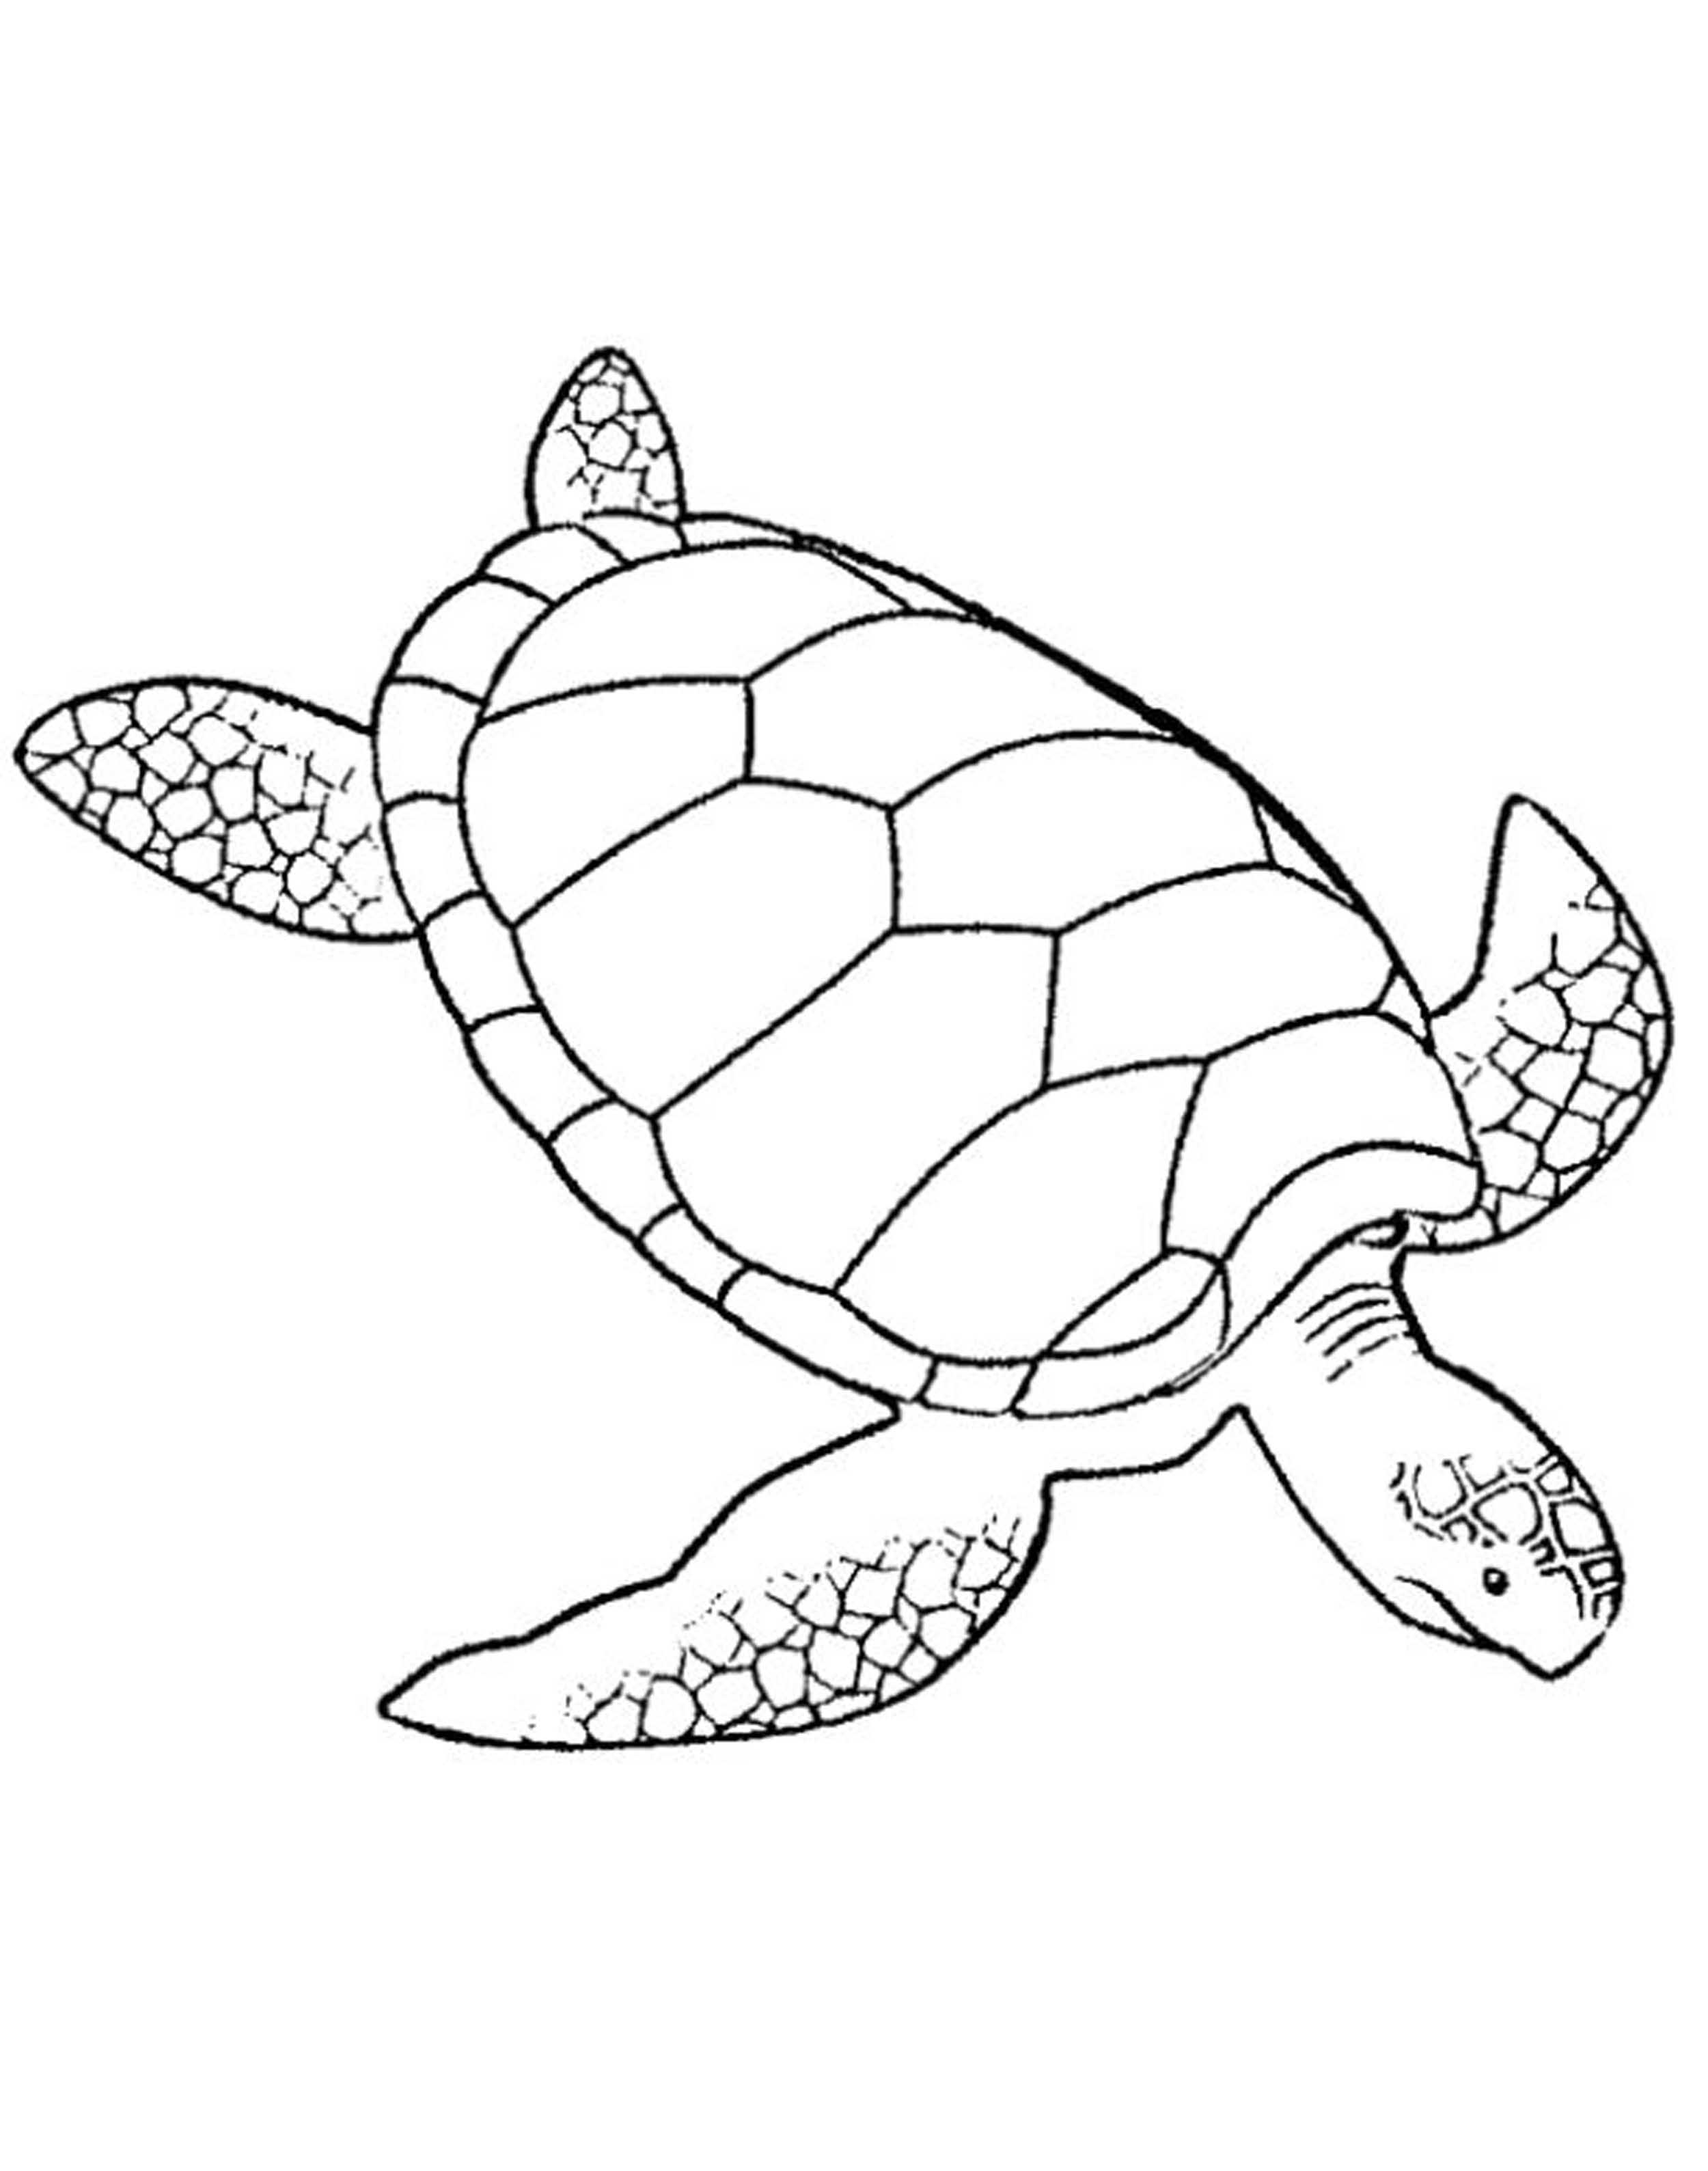 coloring pages of turtle top 20 free printable turtle coloring pages online coloring turtle of pages